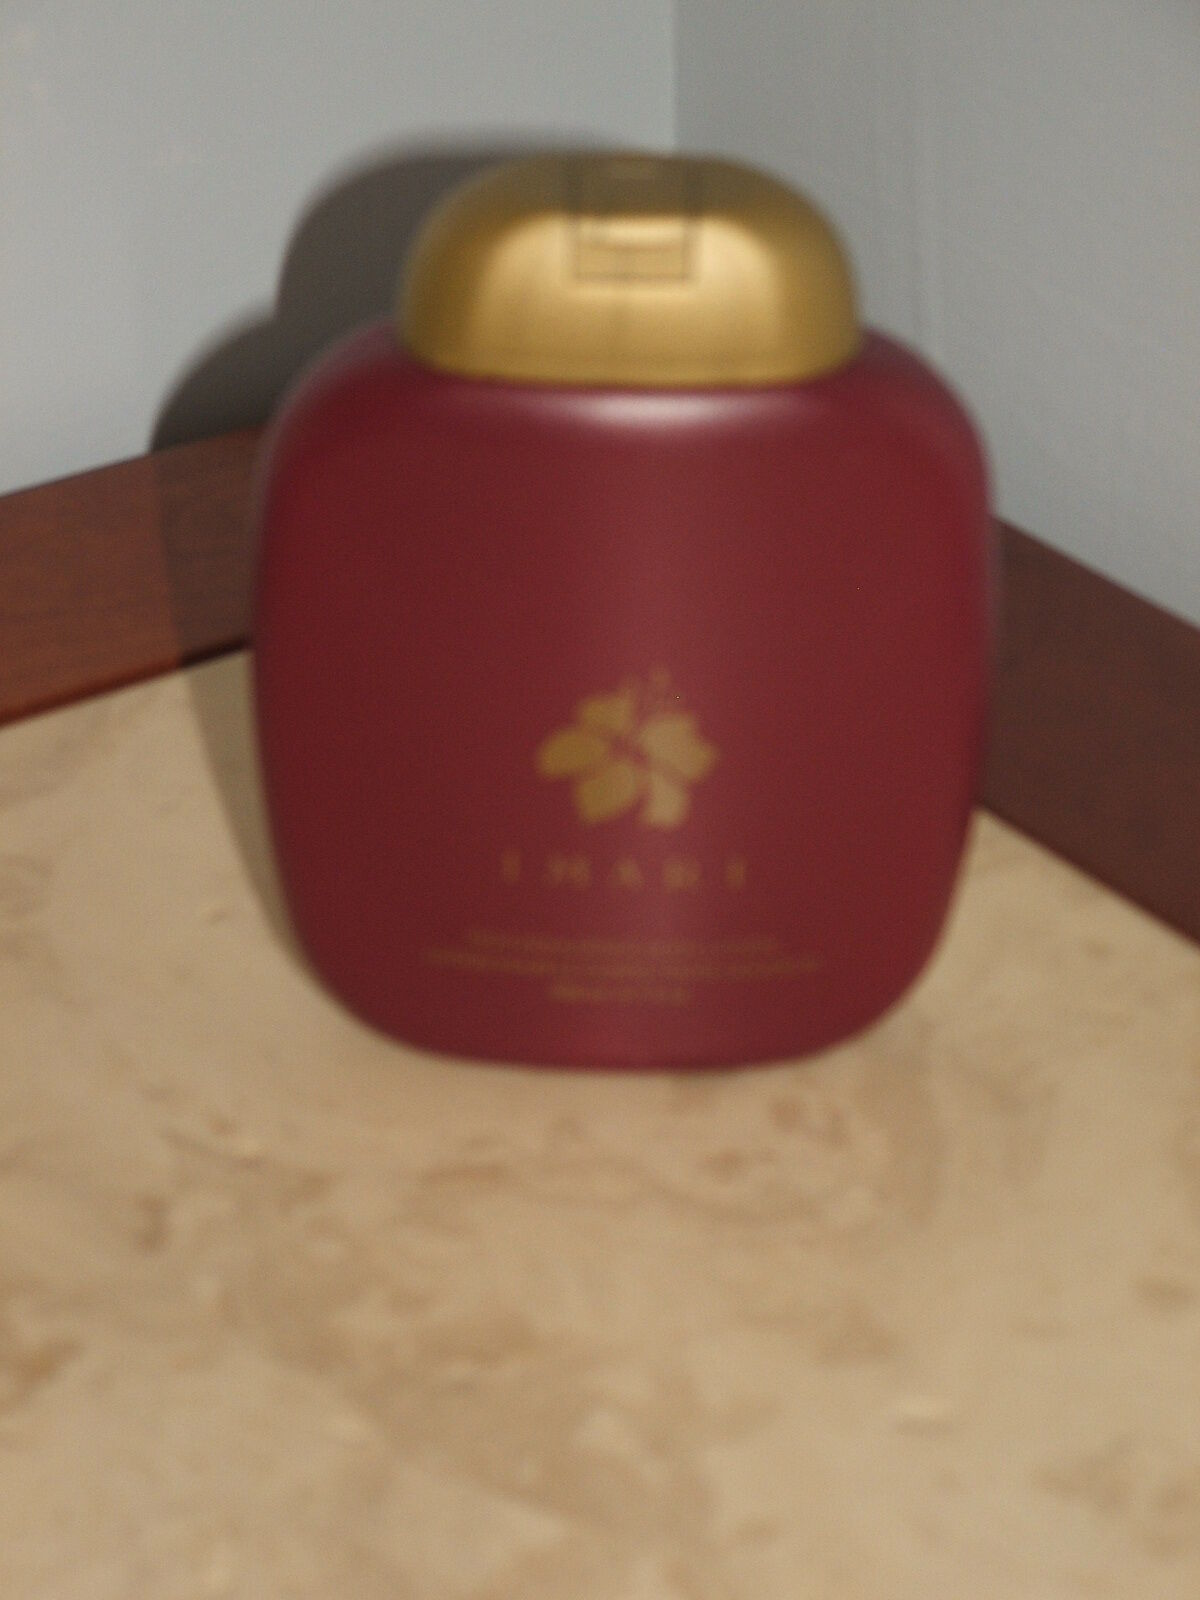 BRAND NEW UNOPENED Avon IMARI BODY LOTION New 6.7 FL OZ.